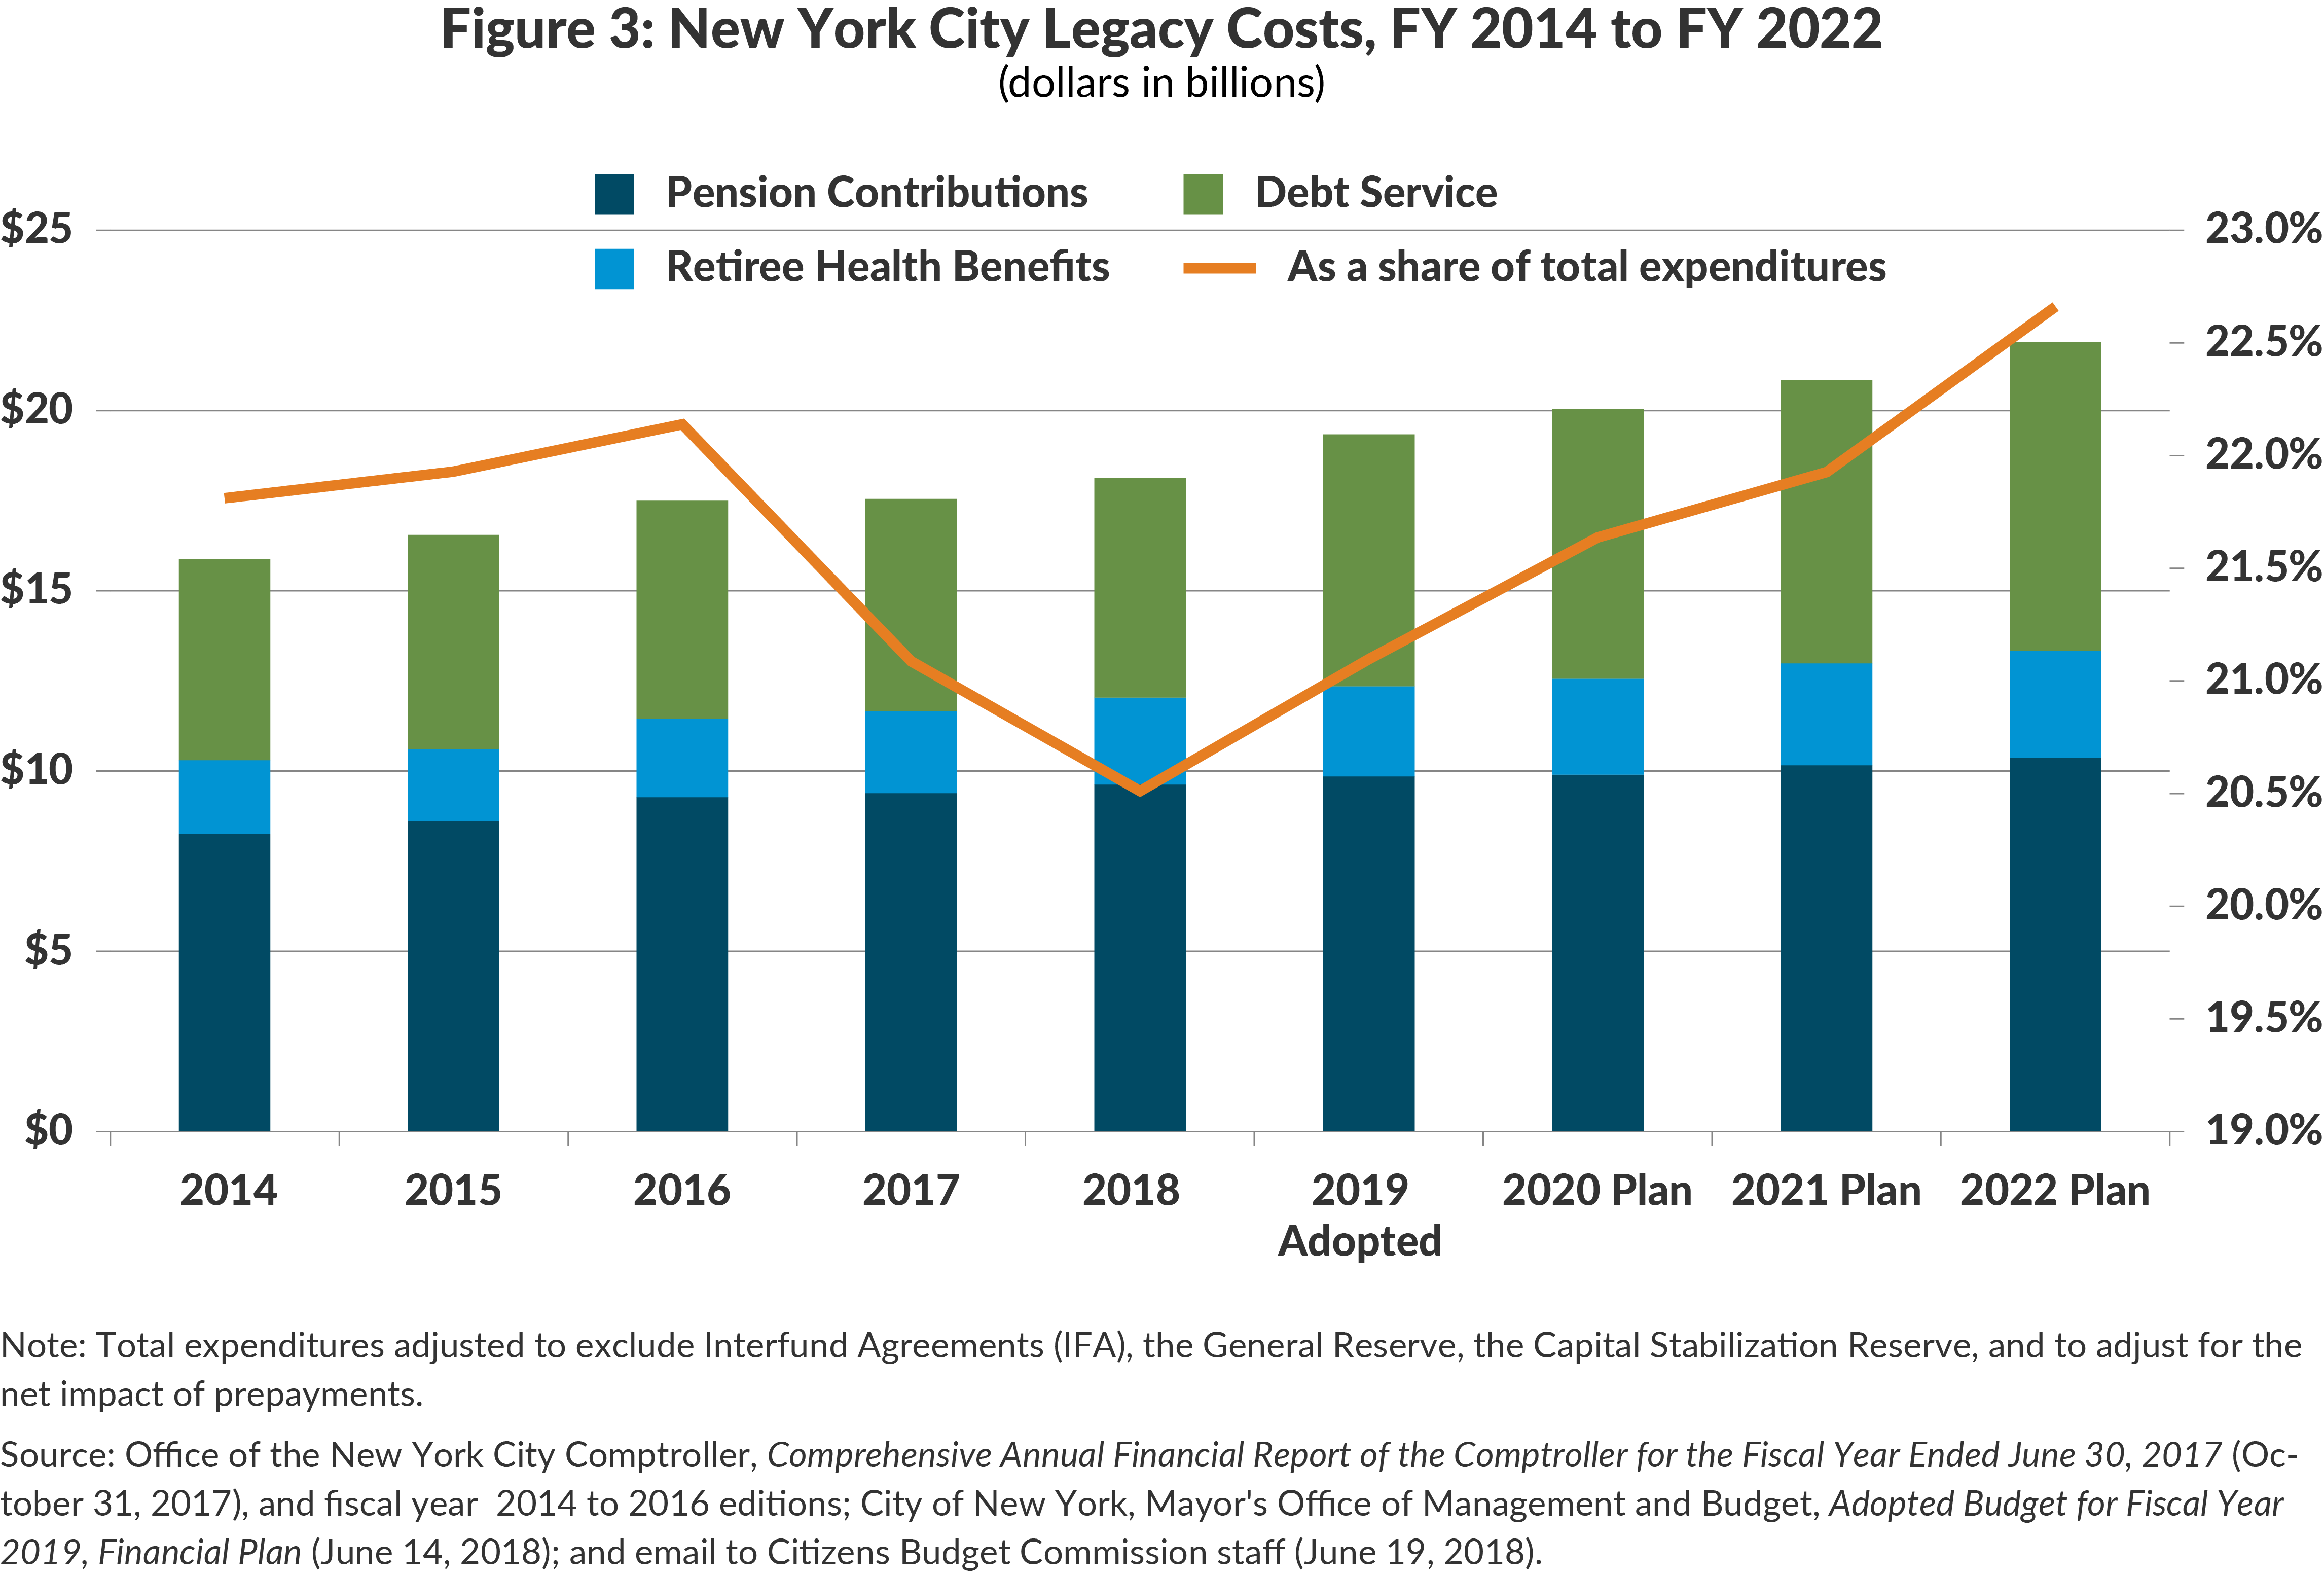 Figure 3: New York City Legacy Costs, FY 2014 to FY 2022